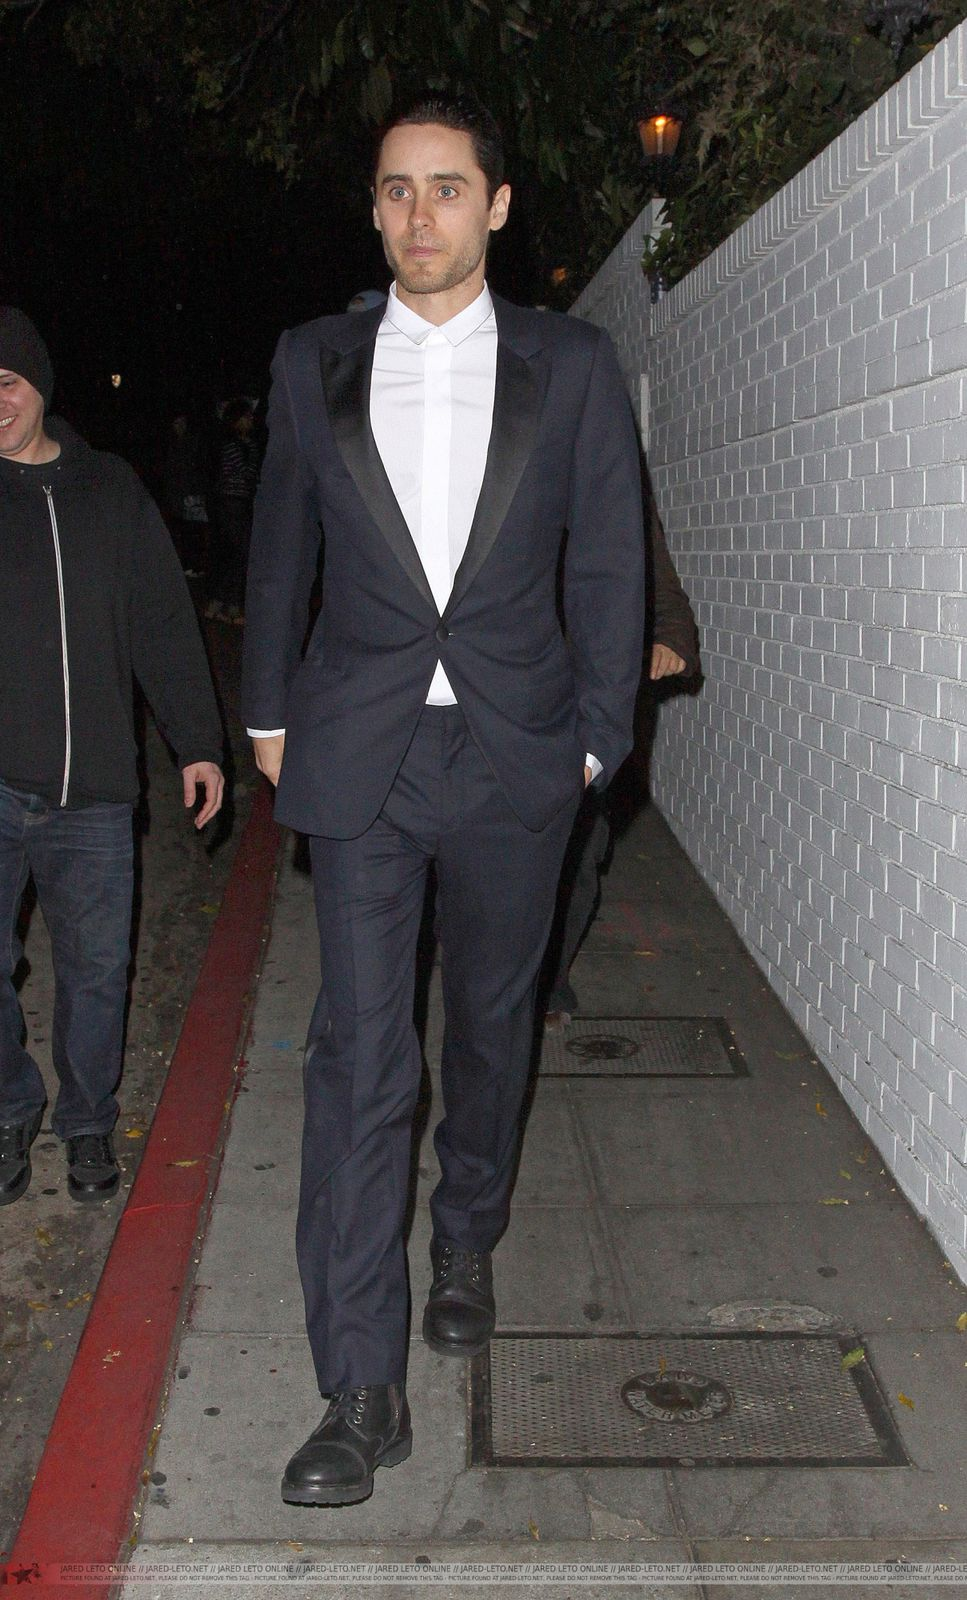 Jared Leto Leaving Chateau Marmont - Los Angeles - 21 Février 2012 0001